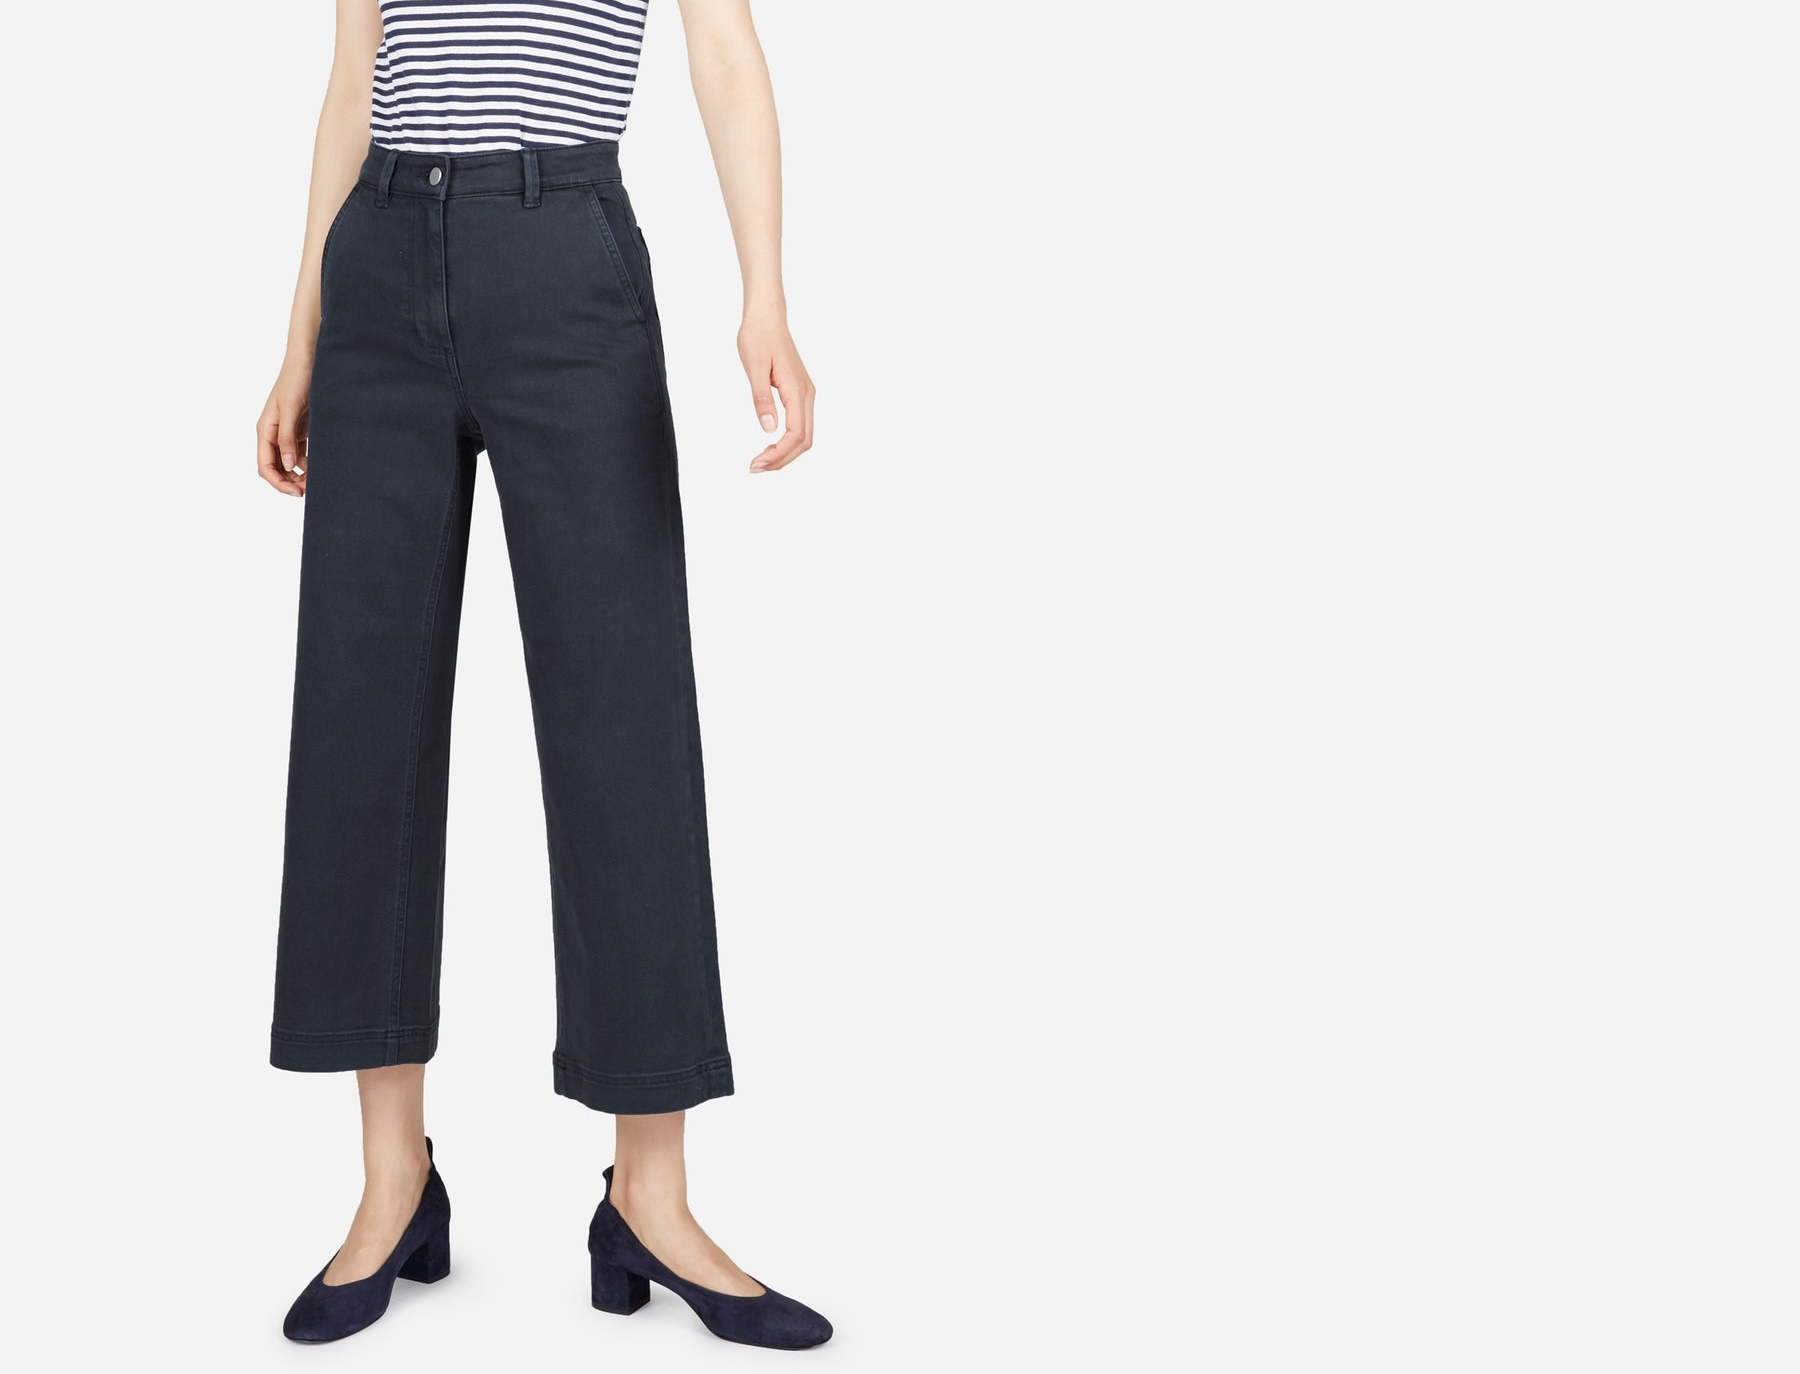 The Wide Leg Crop Pant , $68